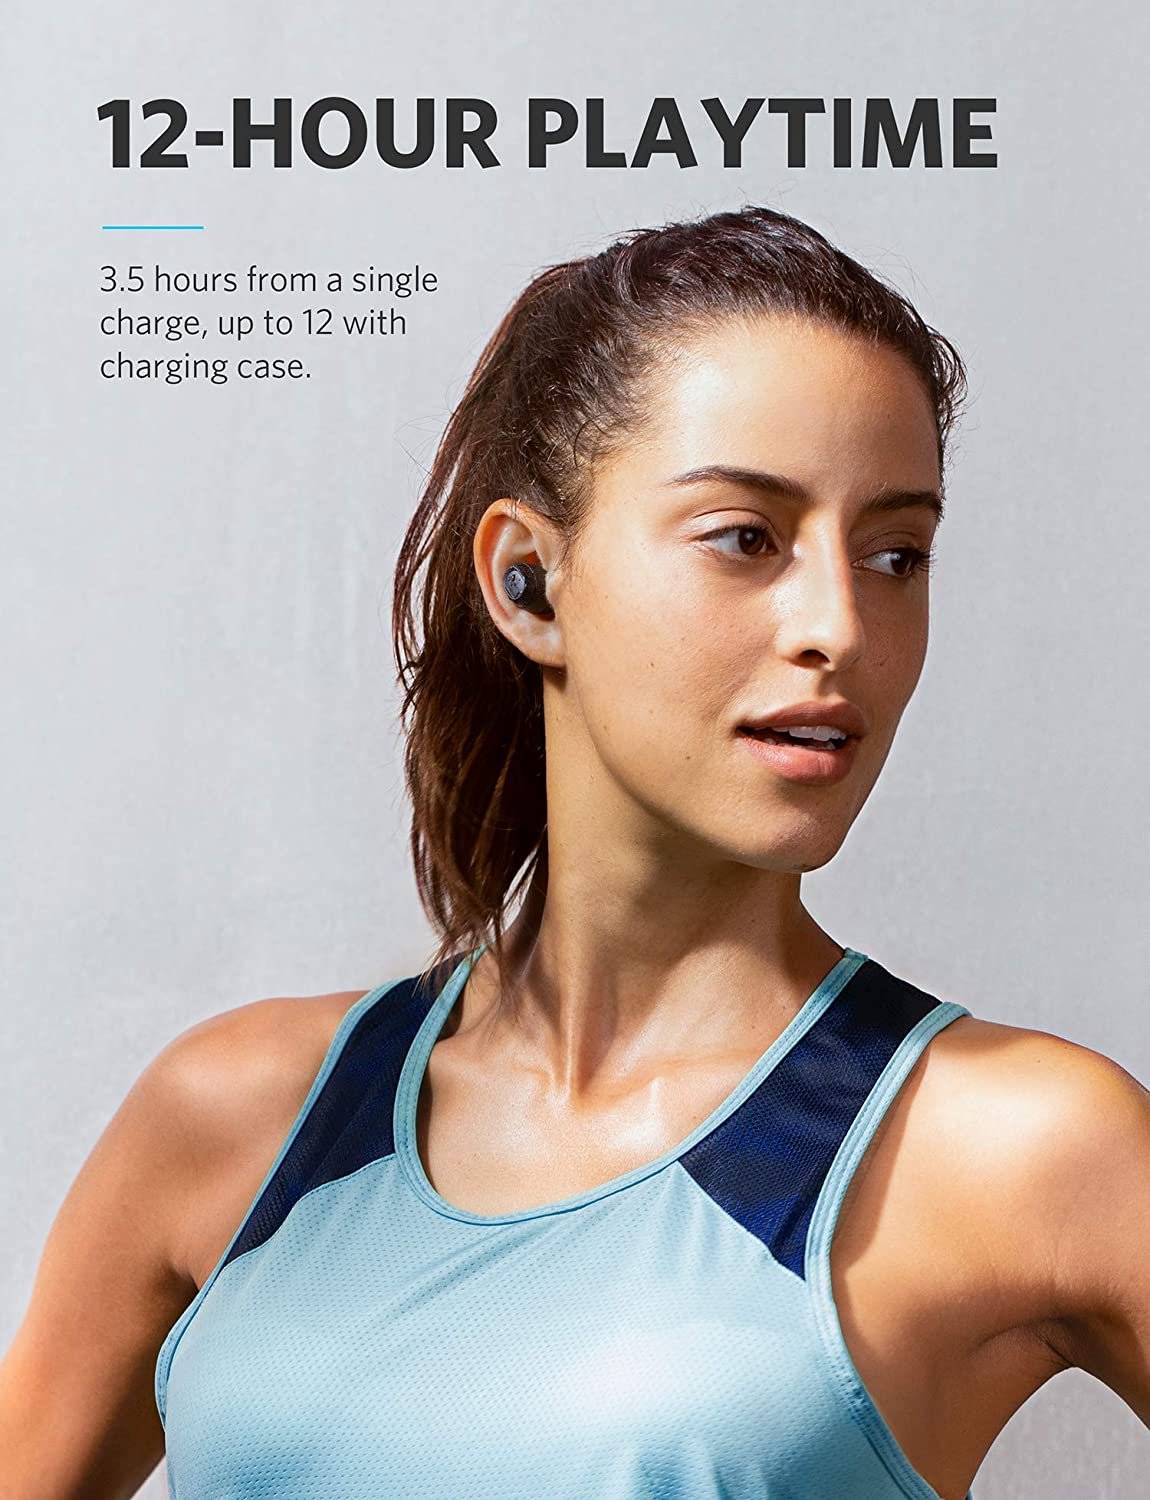 Soundcore True Wireless Earphones Liberty Lite By Anker Samsung Headphone Cable Wiring Diagram Headphones With 12 Hour Playtime Graphene Enhanced Drivers Microphone And Bluetooth 5